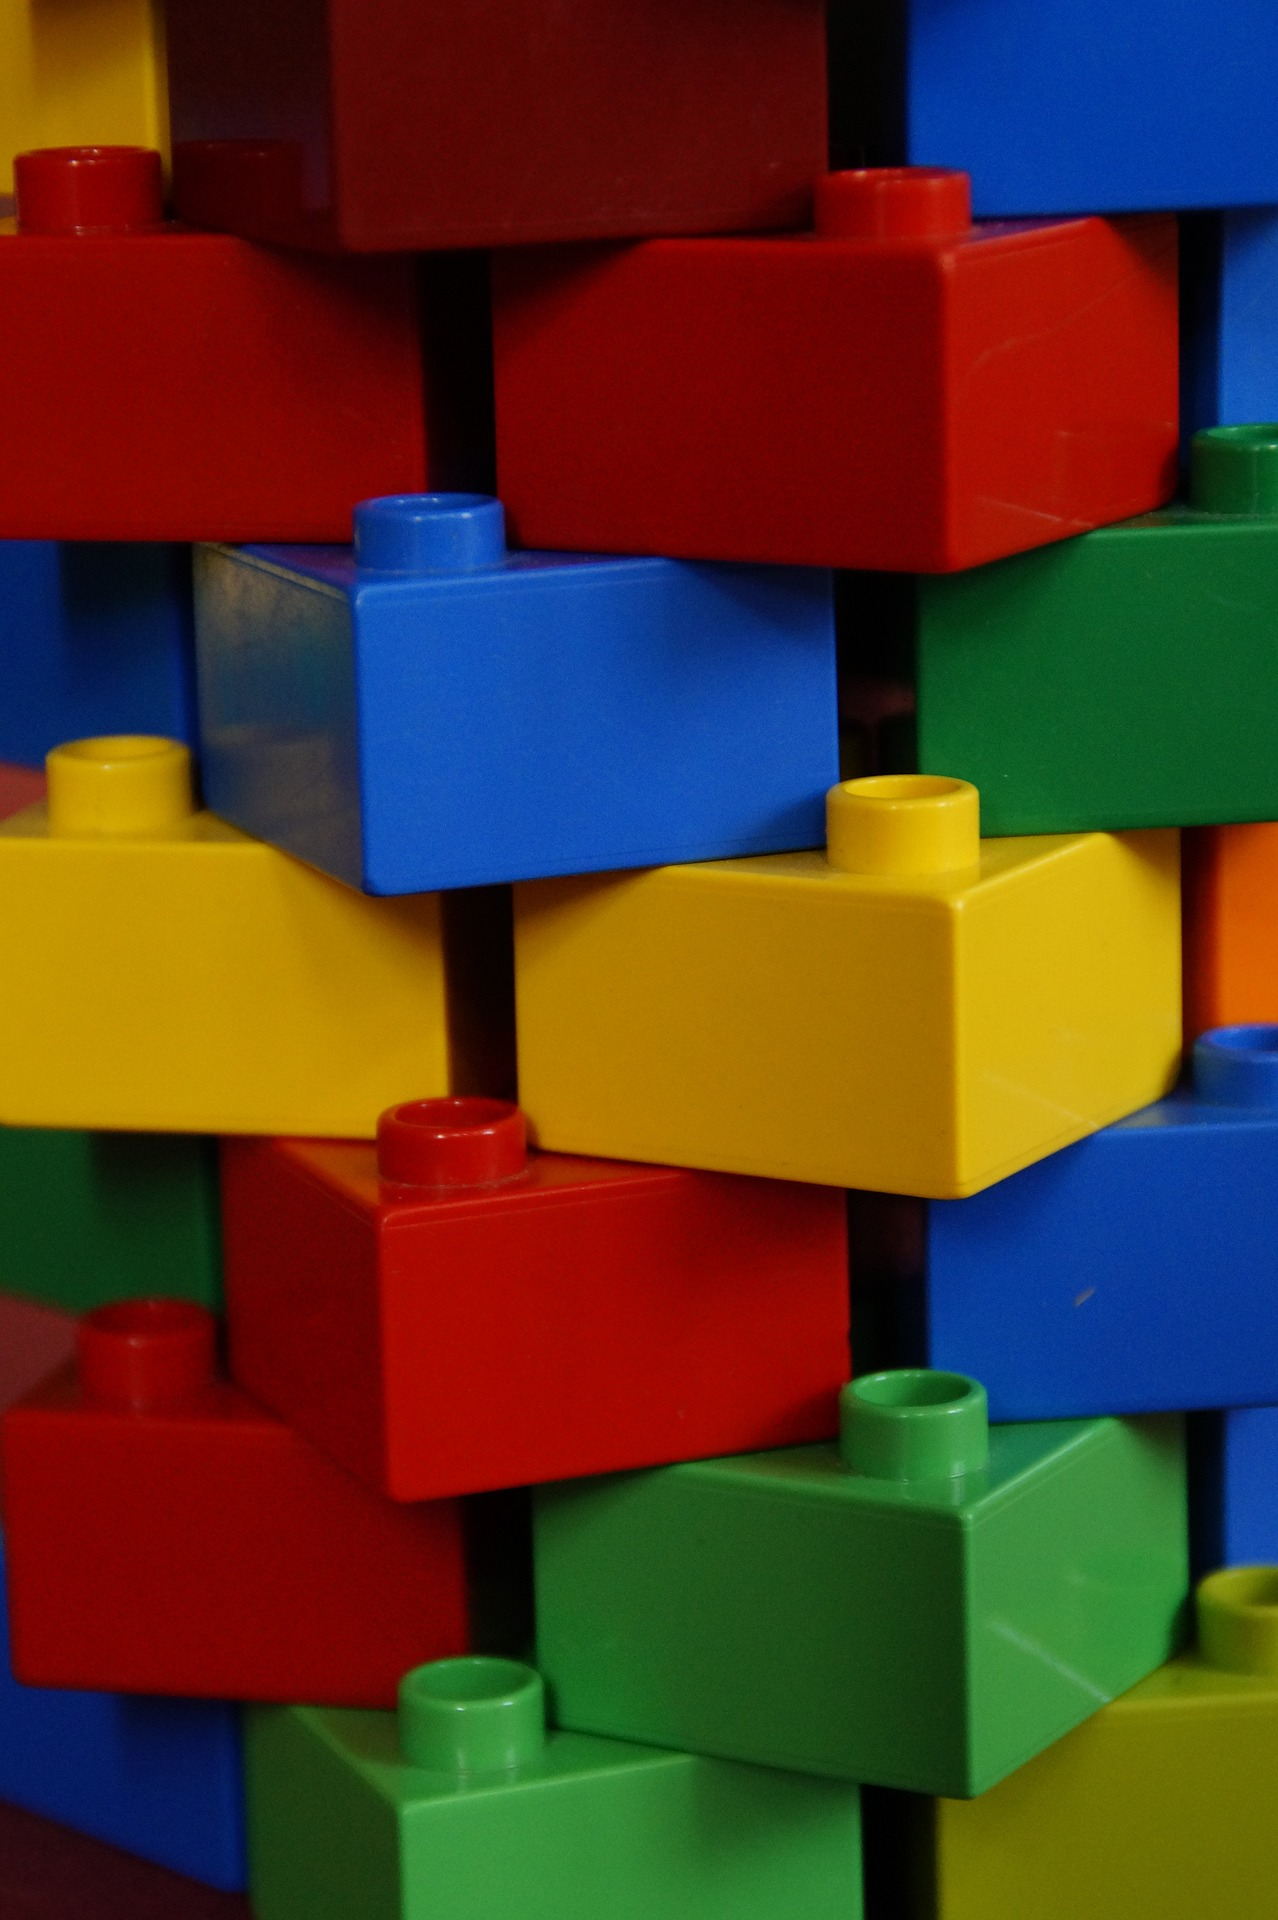 Adding To The Building Blocks! The Key Areas To Scale Your Business